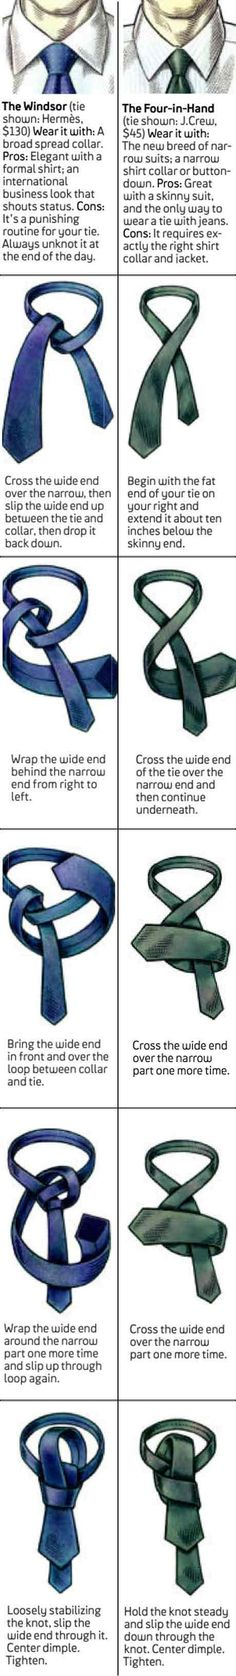 How to Tie a Tie in 5 Easy Steps